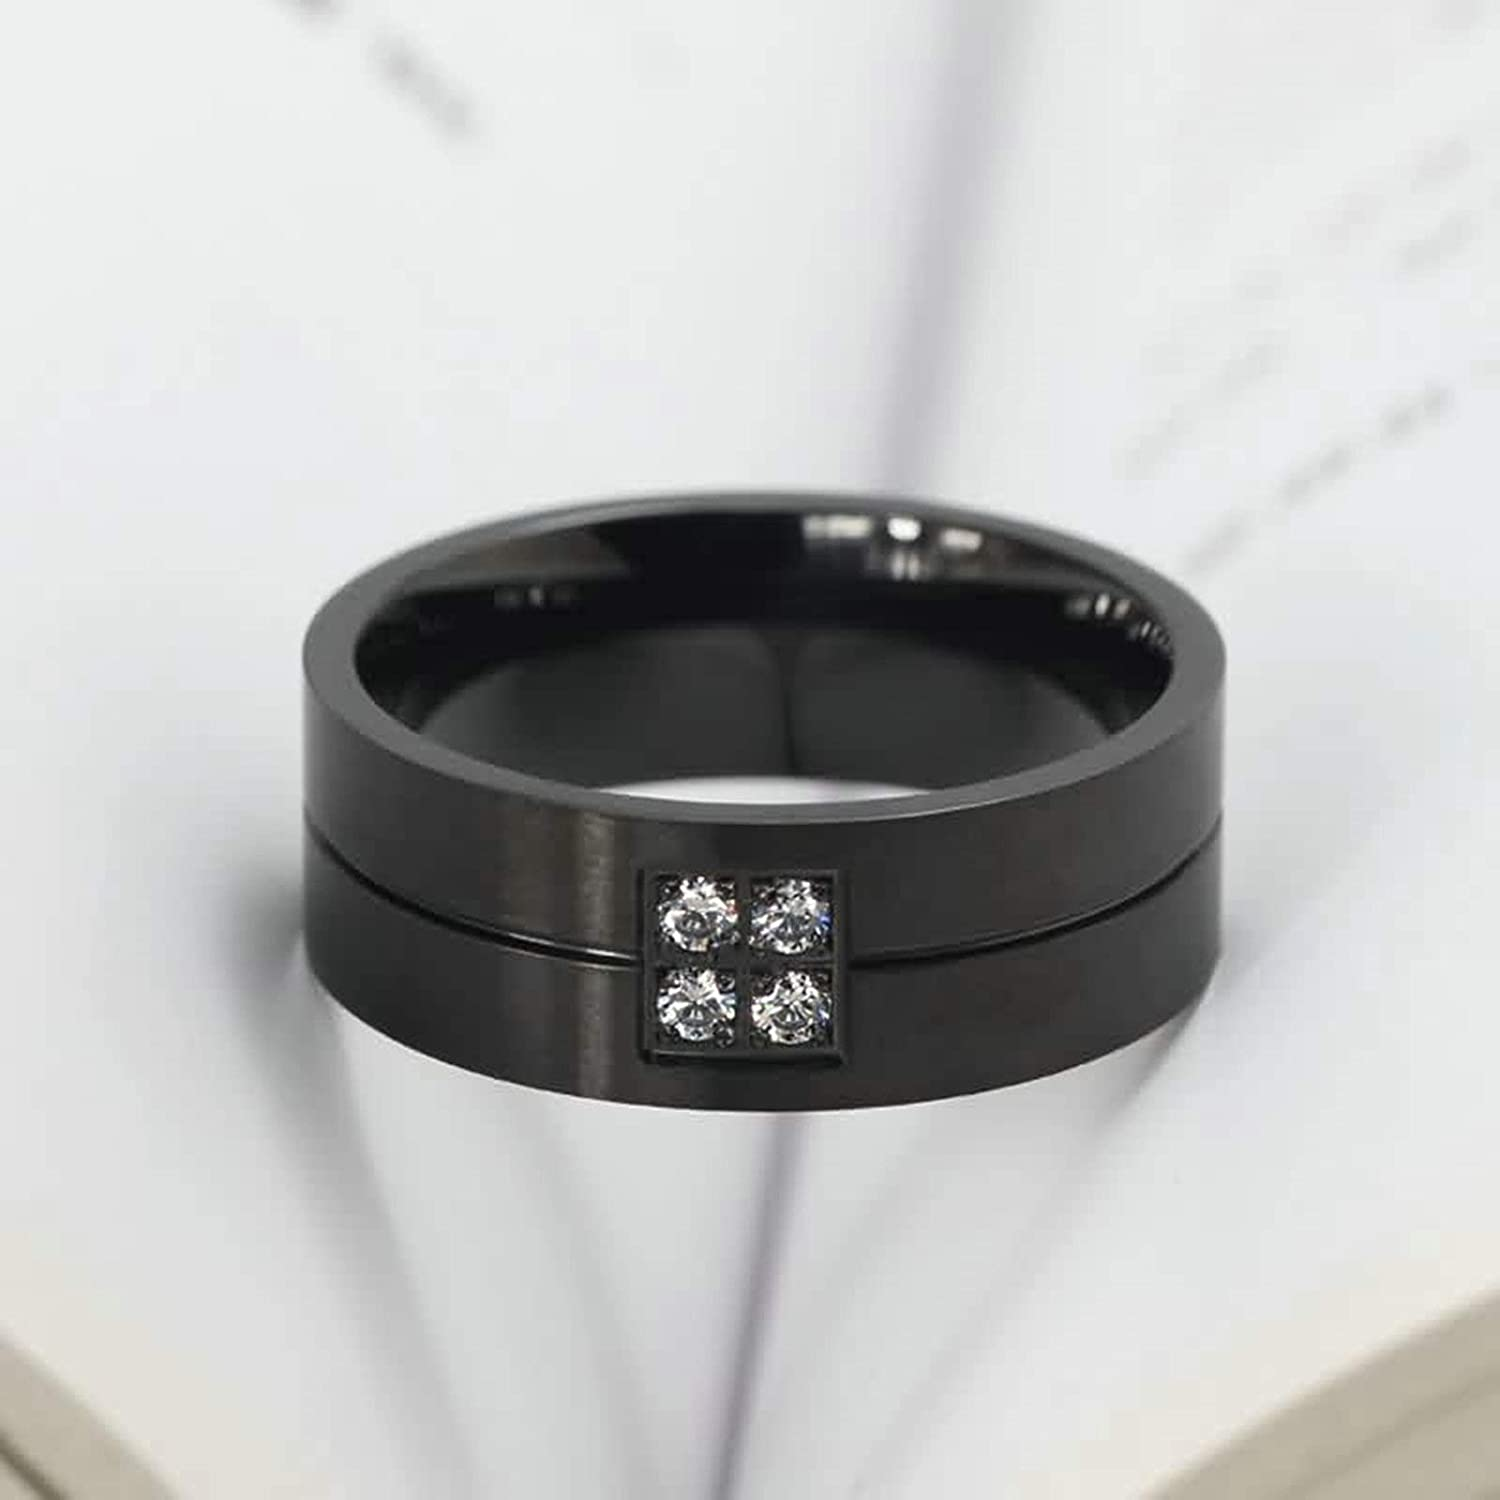 Epinki Ring Engagement Band Jewelry Stainless Steel Rings for Men Wedding Ring Scrub Crystal Ring